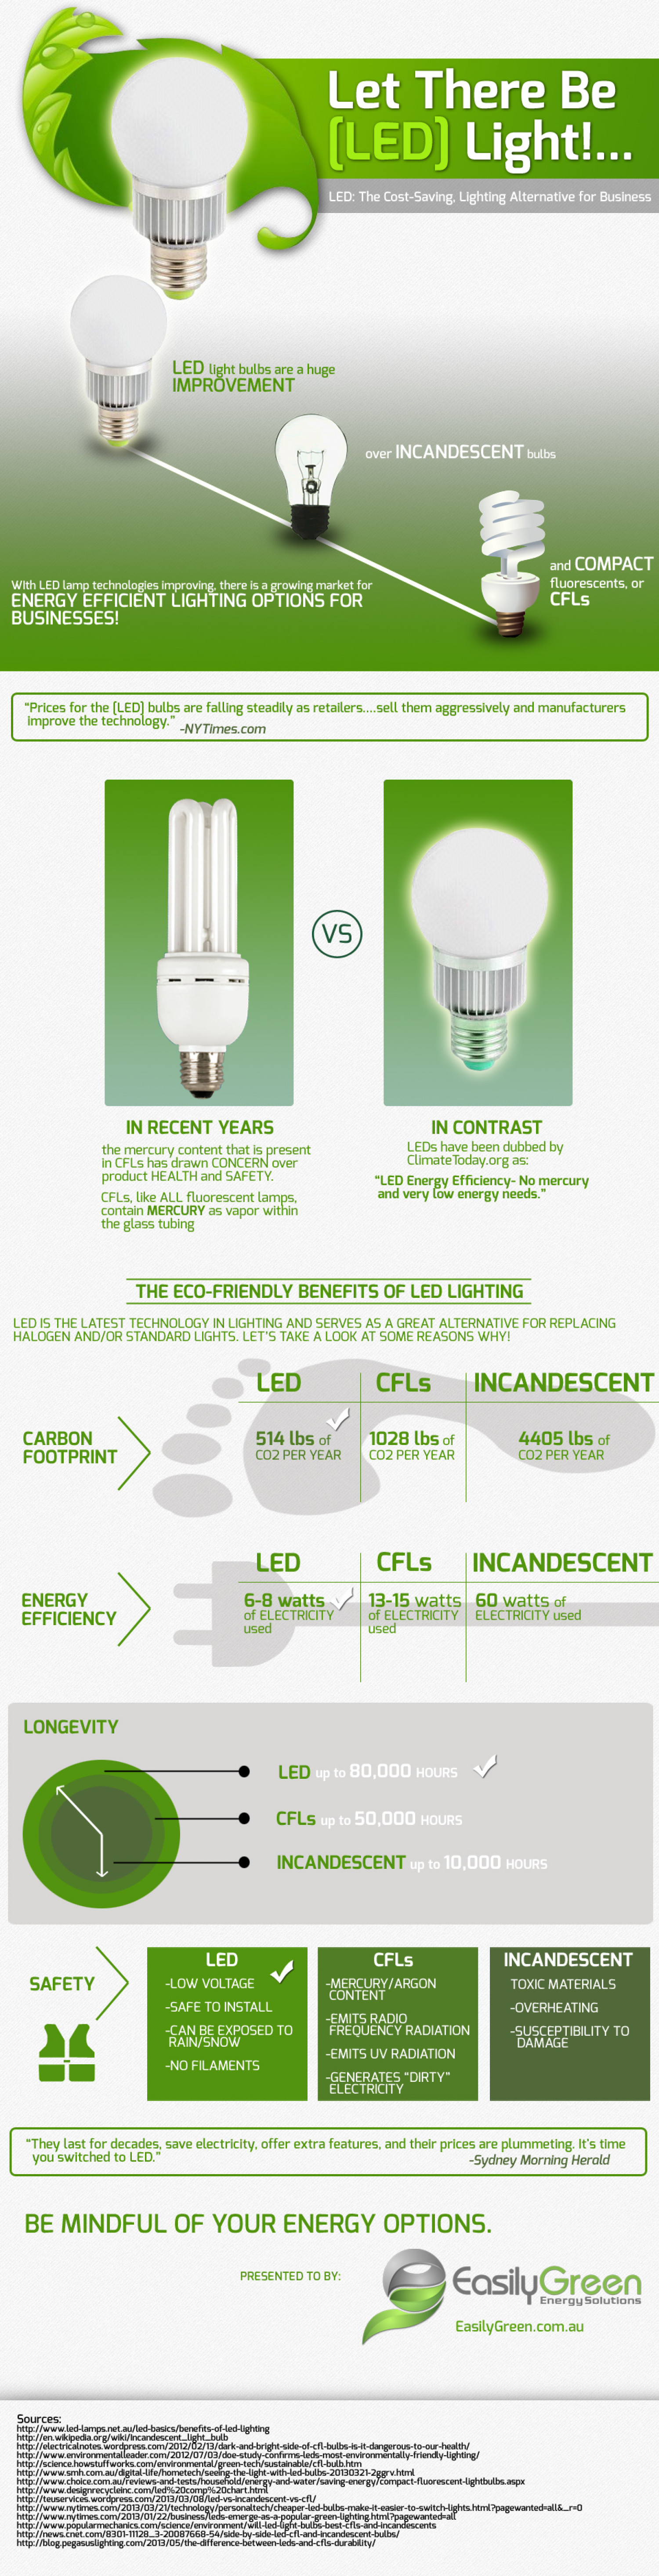 Let There Be (Led) Light! Infographic